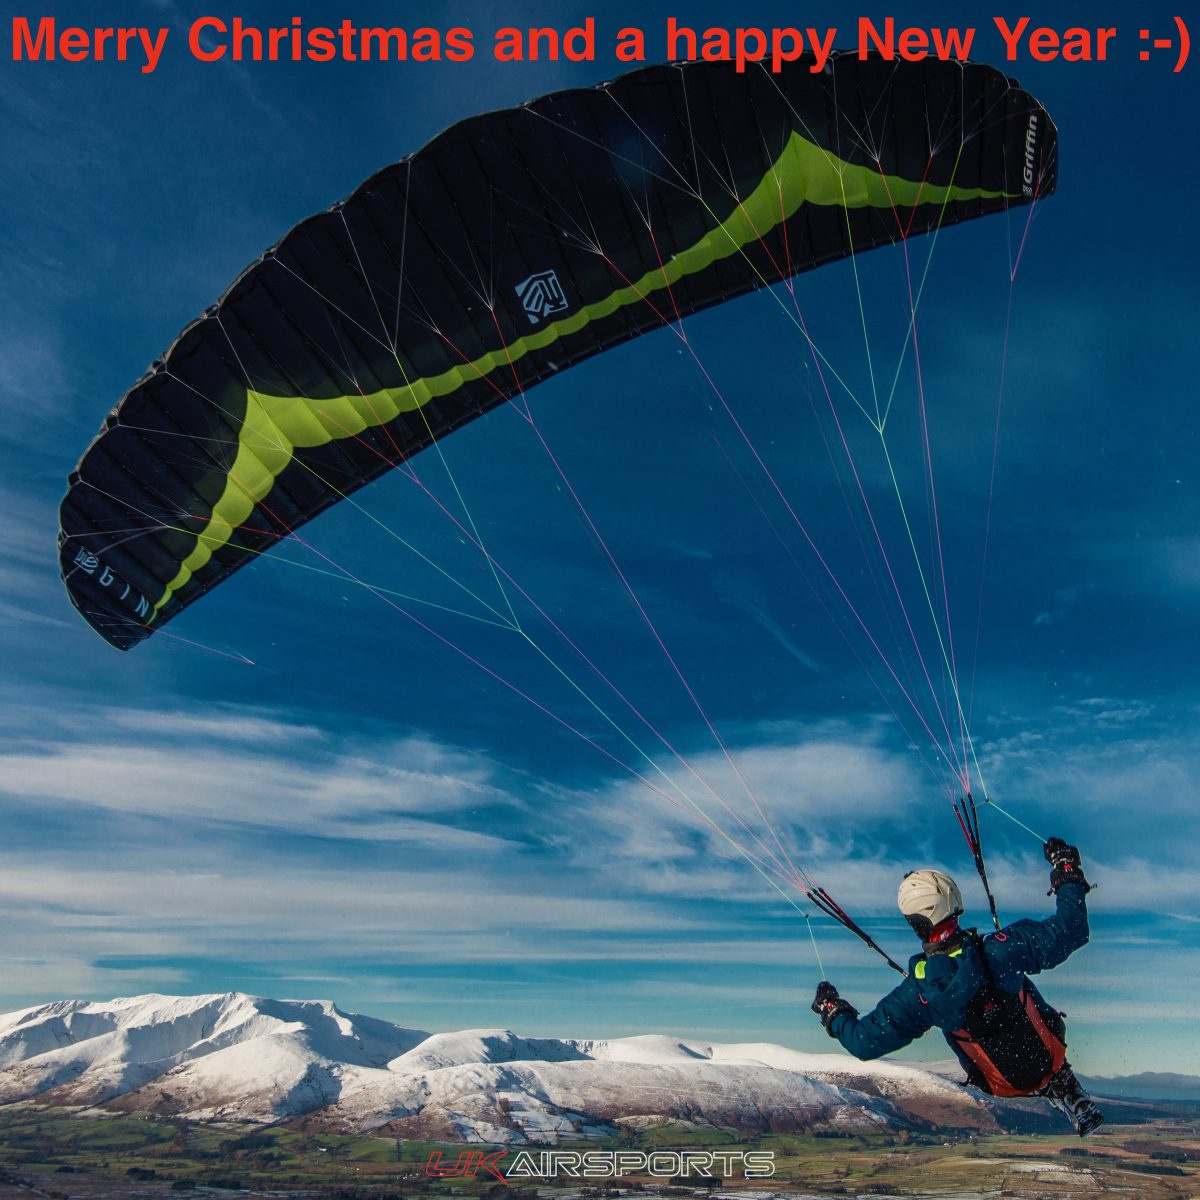 UK Airsports wishing you a very Merry Christmas and a happy New Year.